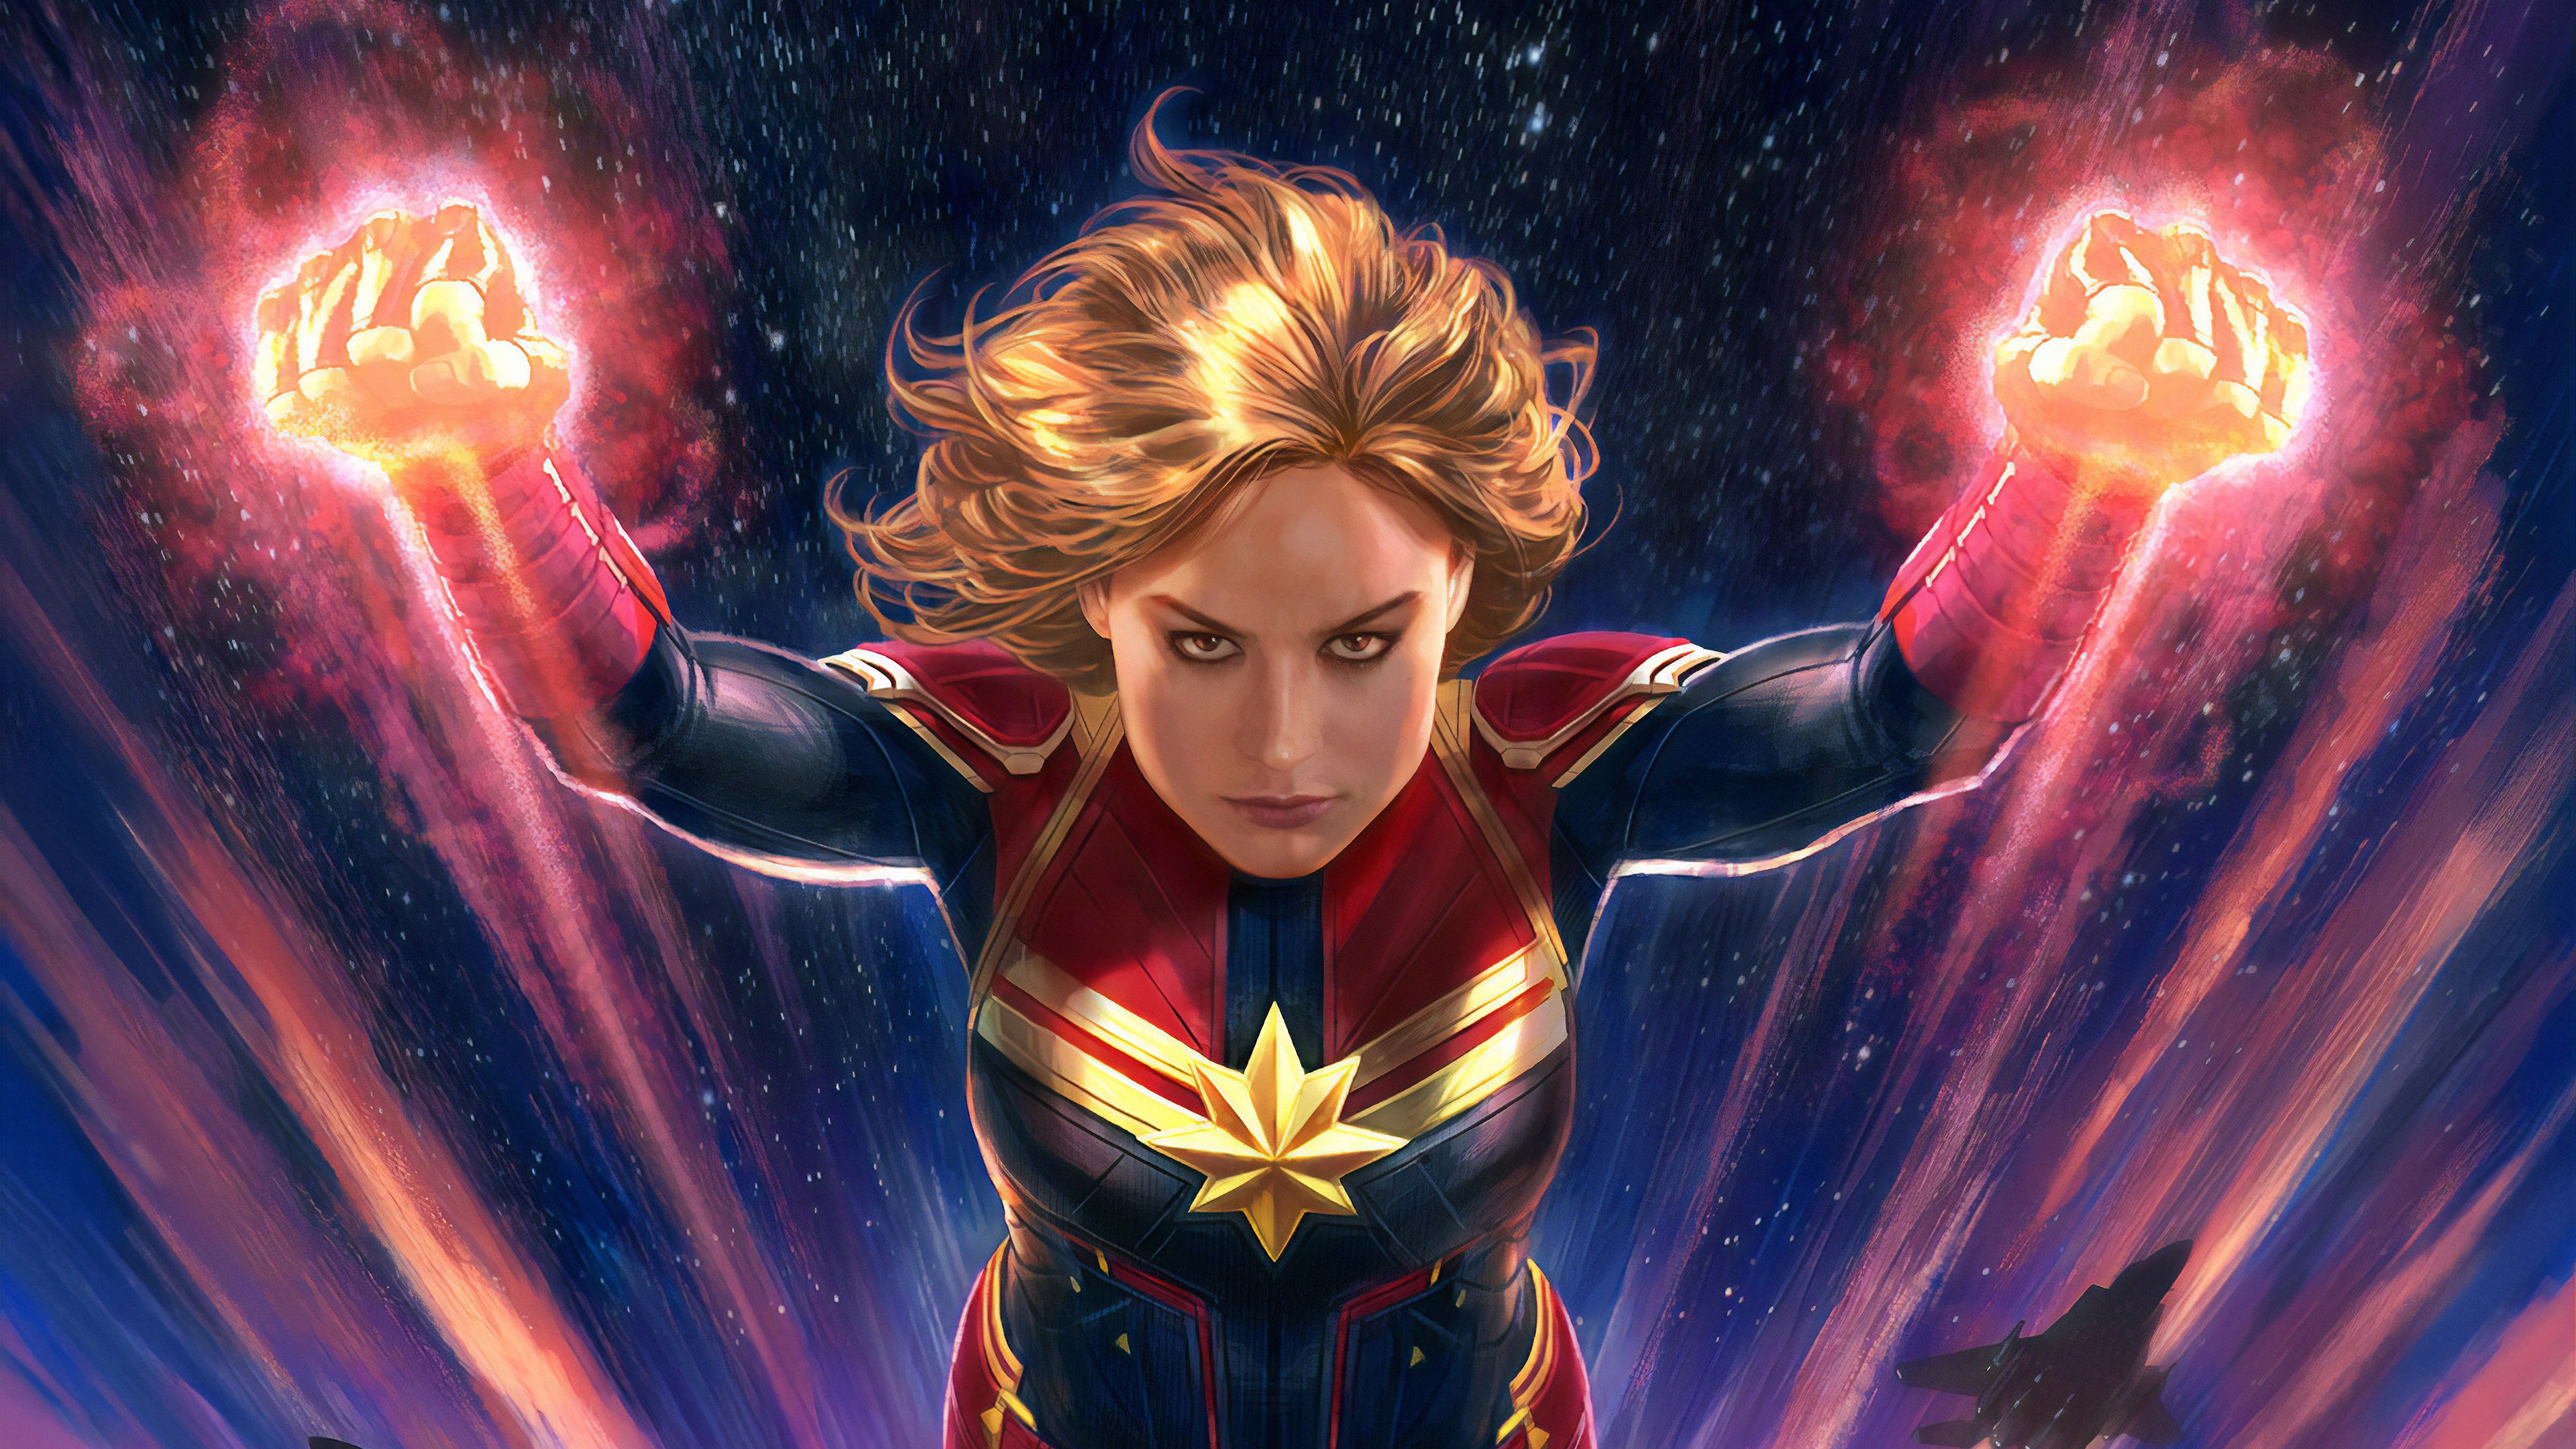 captain marvel arts 1570394277 - Captain Marvel Arts - superheroes wallpapers, hd-wallpapers, captain marvel wallpapers, artwork wallpapers, artstation wallpapers, art wallpapers, 4k-wallpapers